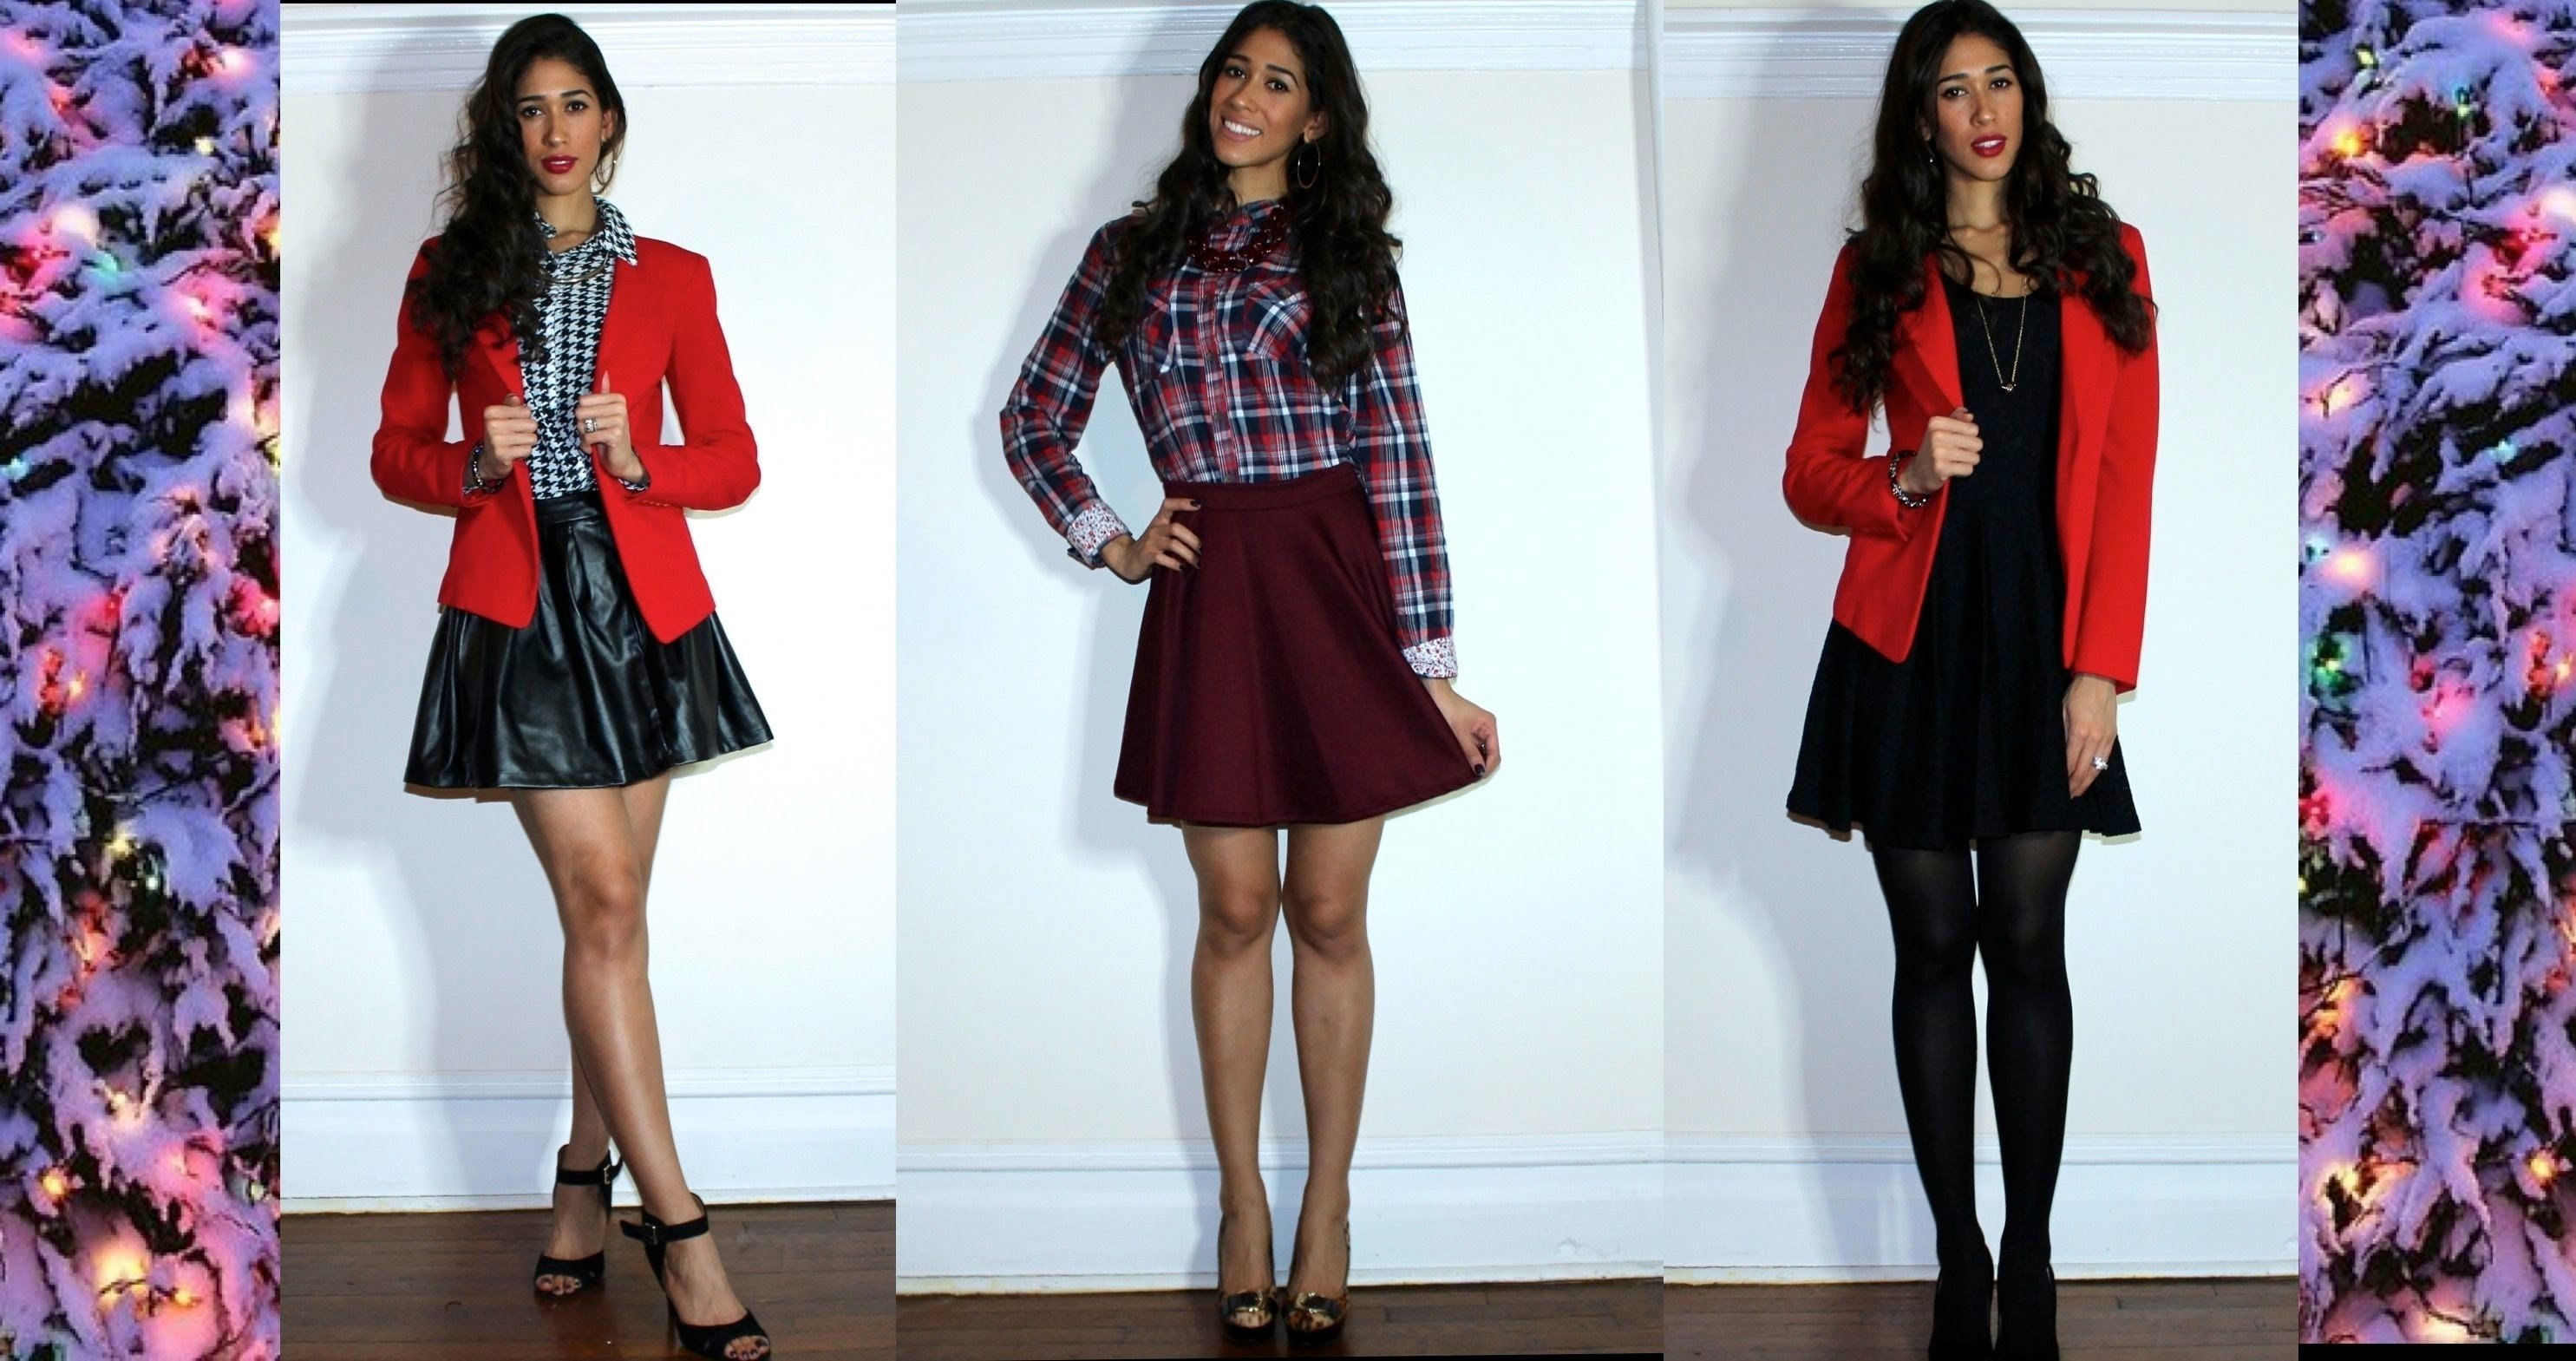 10 Famous Christmas Outfits For Women Ideas 3 christmas outfit ideas 2013 youtube 1 2021